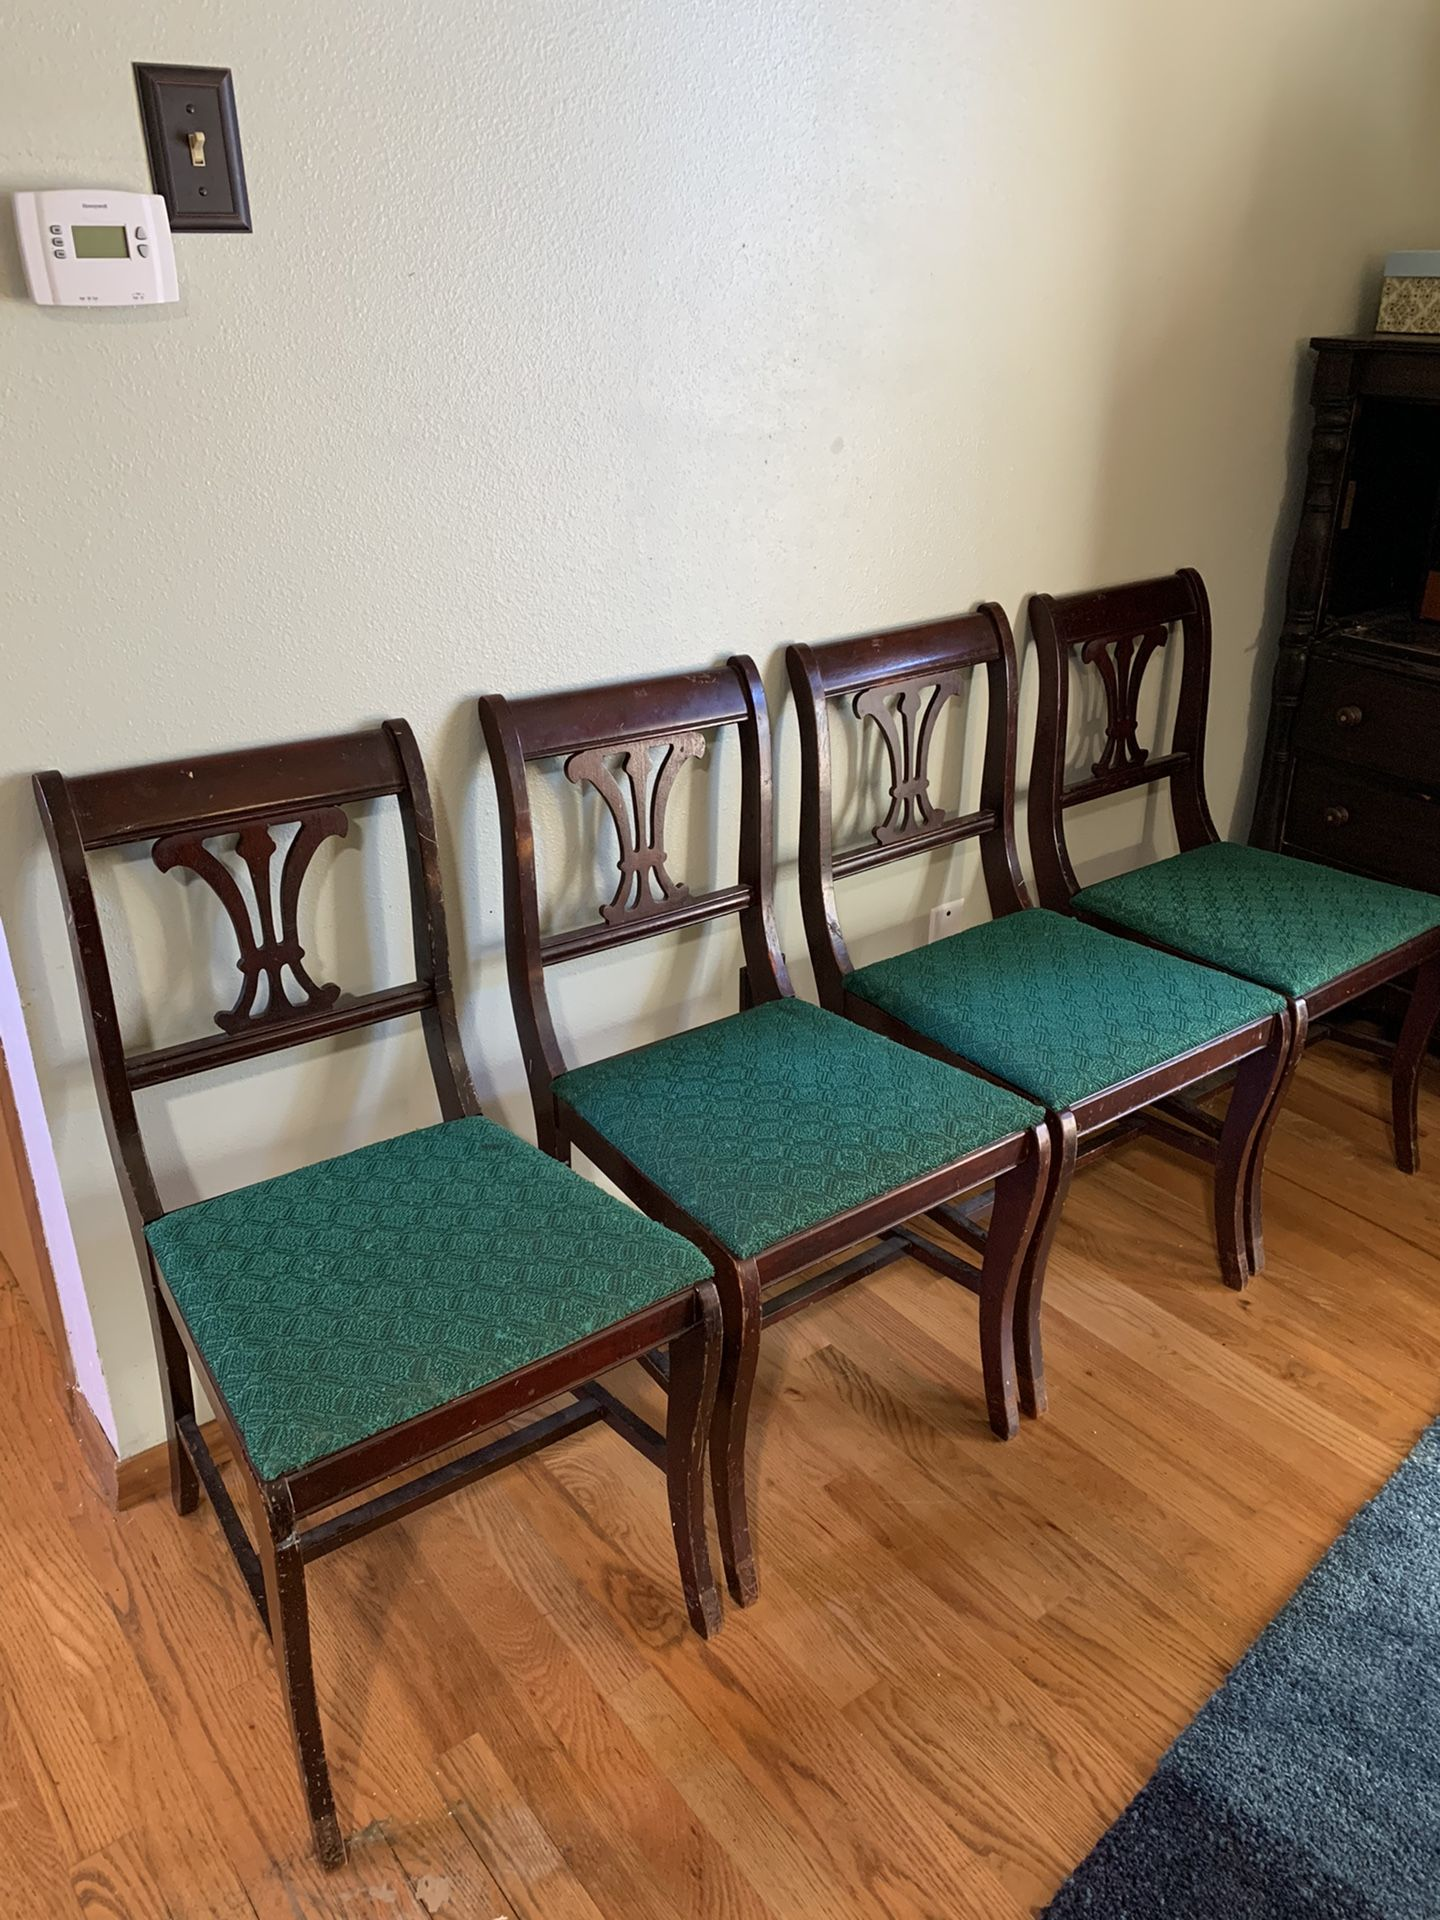 4 Antique Wooden Dining Chairs Retro Vintage!